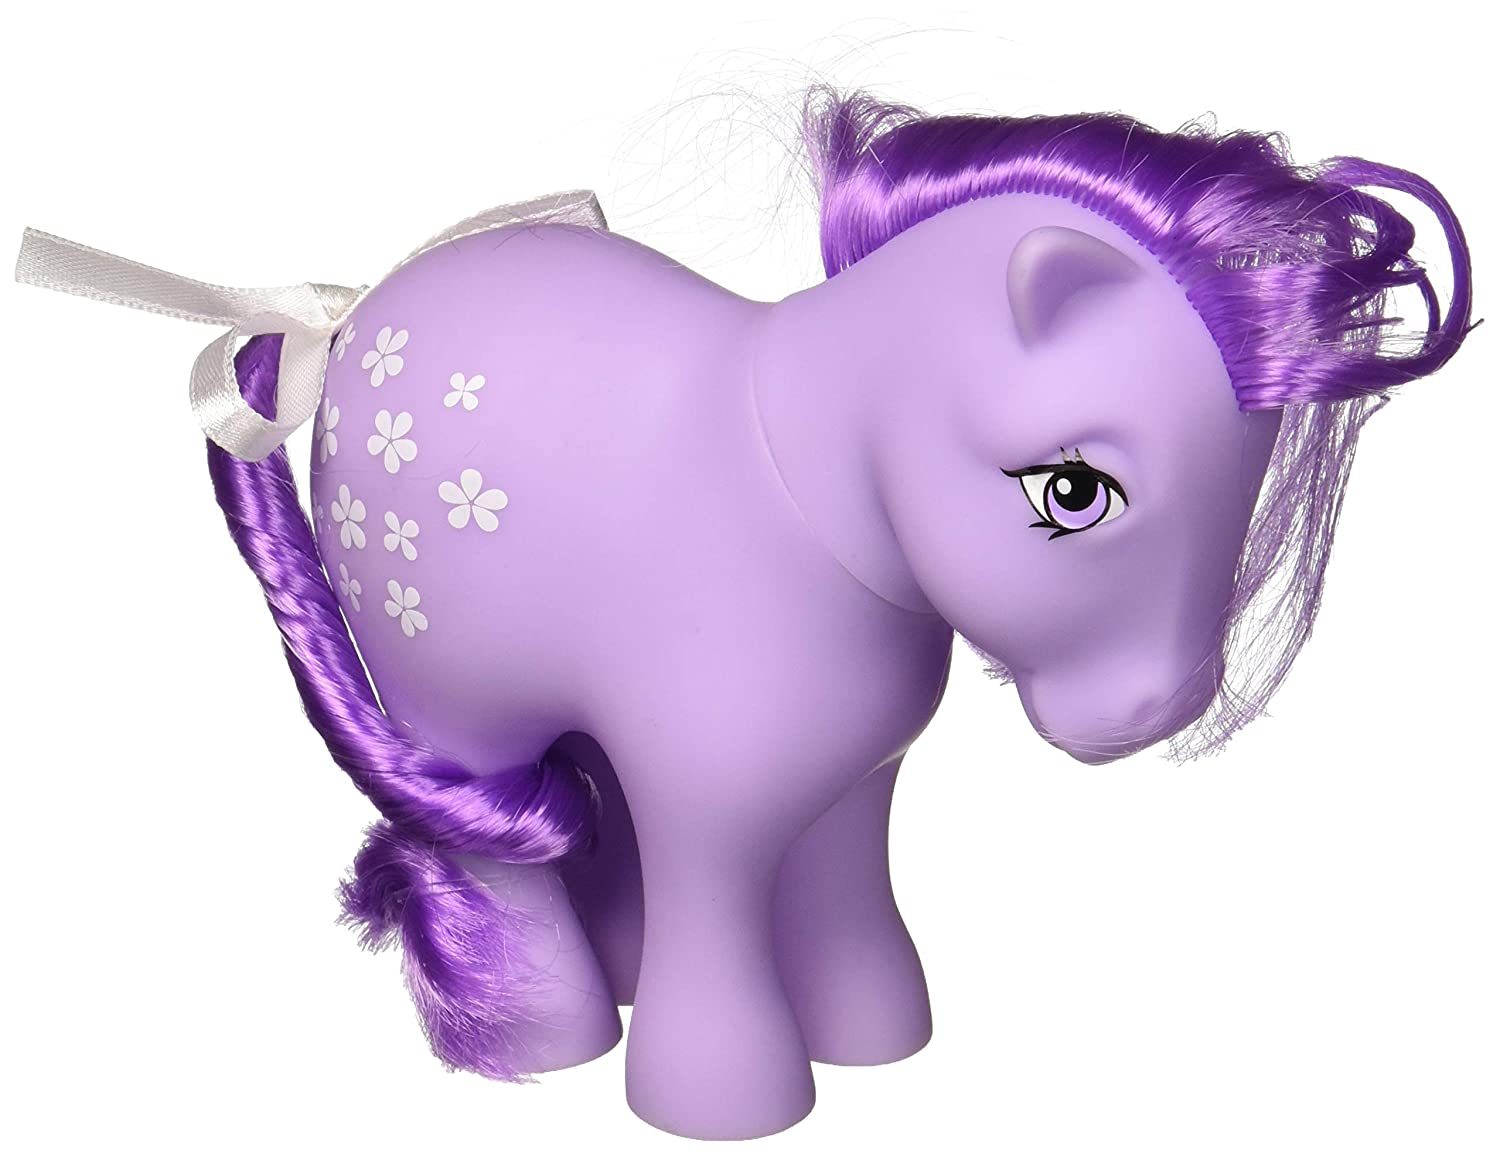 Blue Belle 35234 Basic Fun My Little Pony Retro